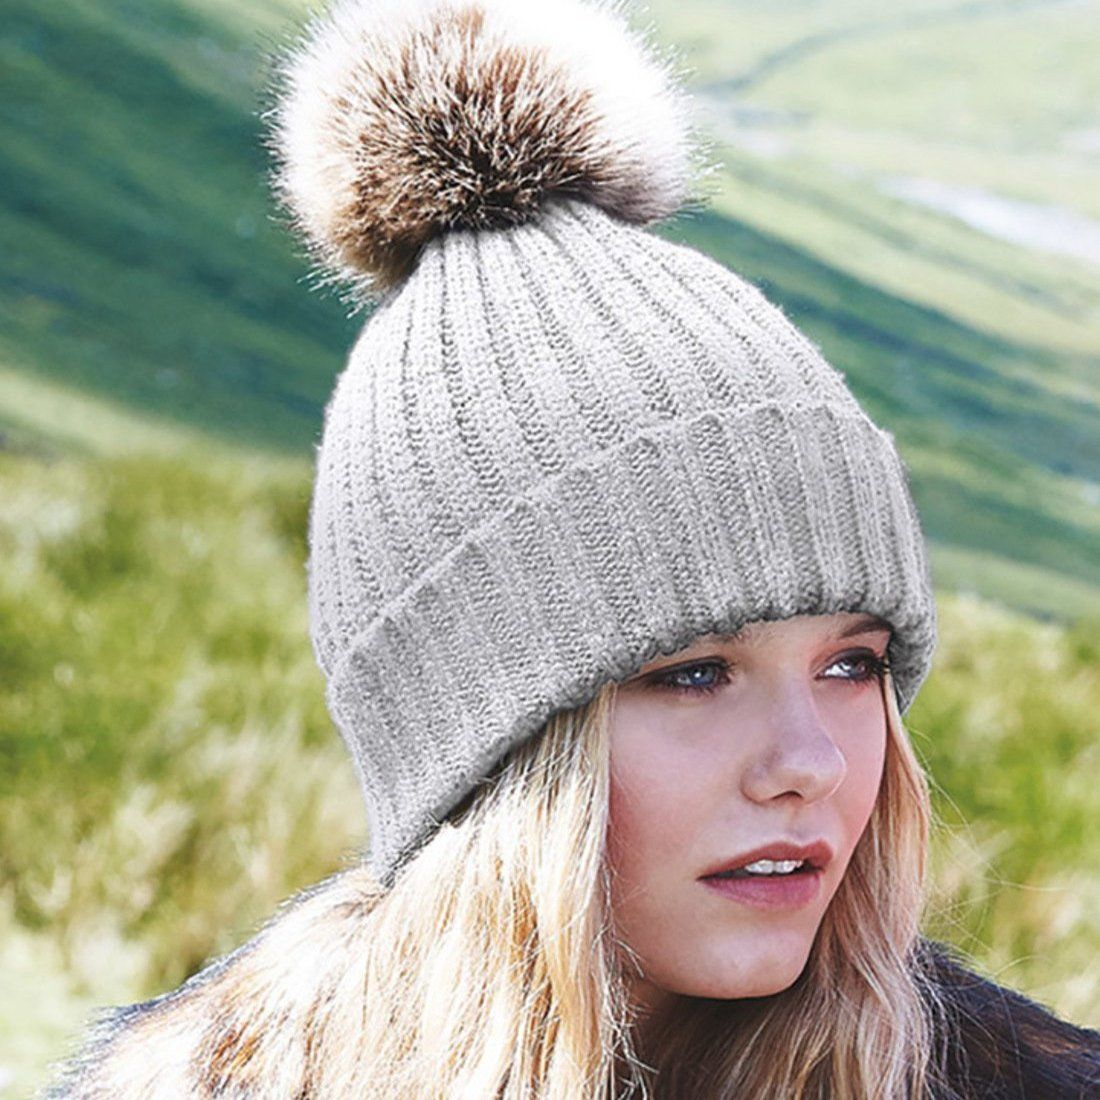 Chunky Knit Autumn/Winter Bobble Hats - product images  of